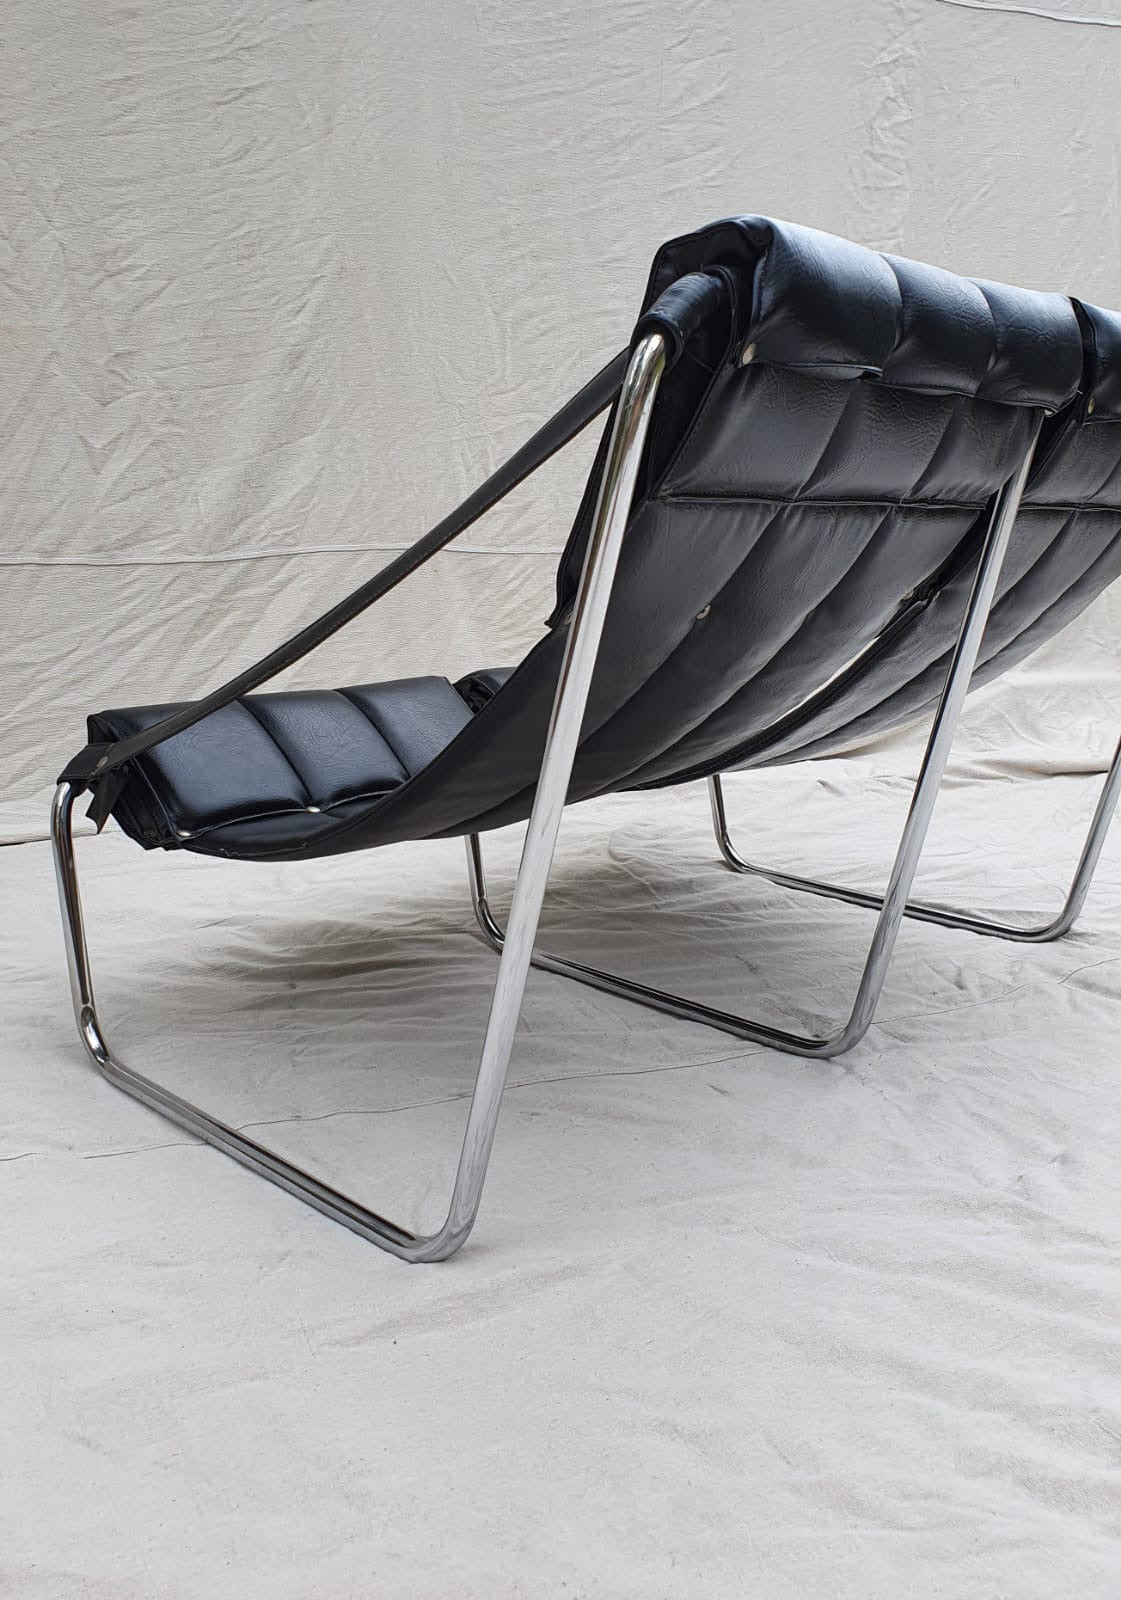 1970s Sling Two Seater